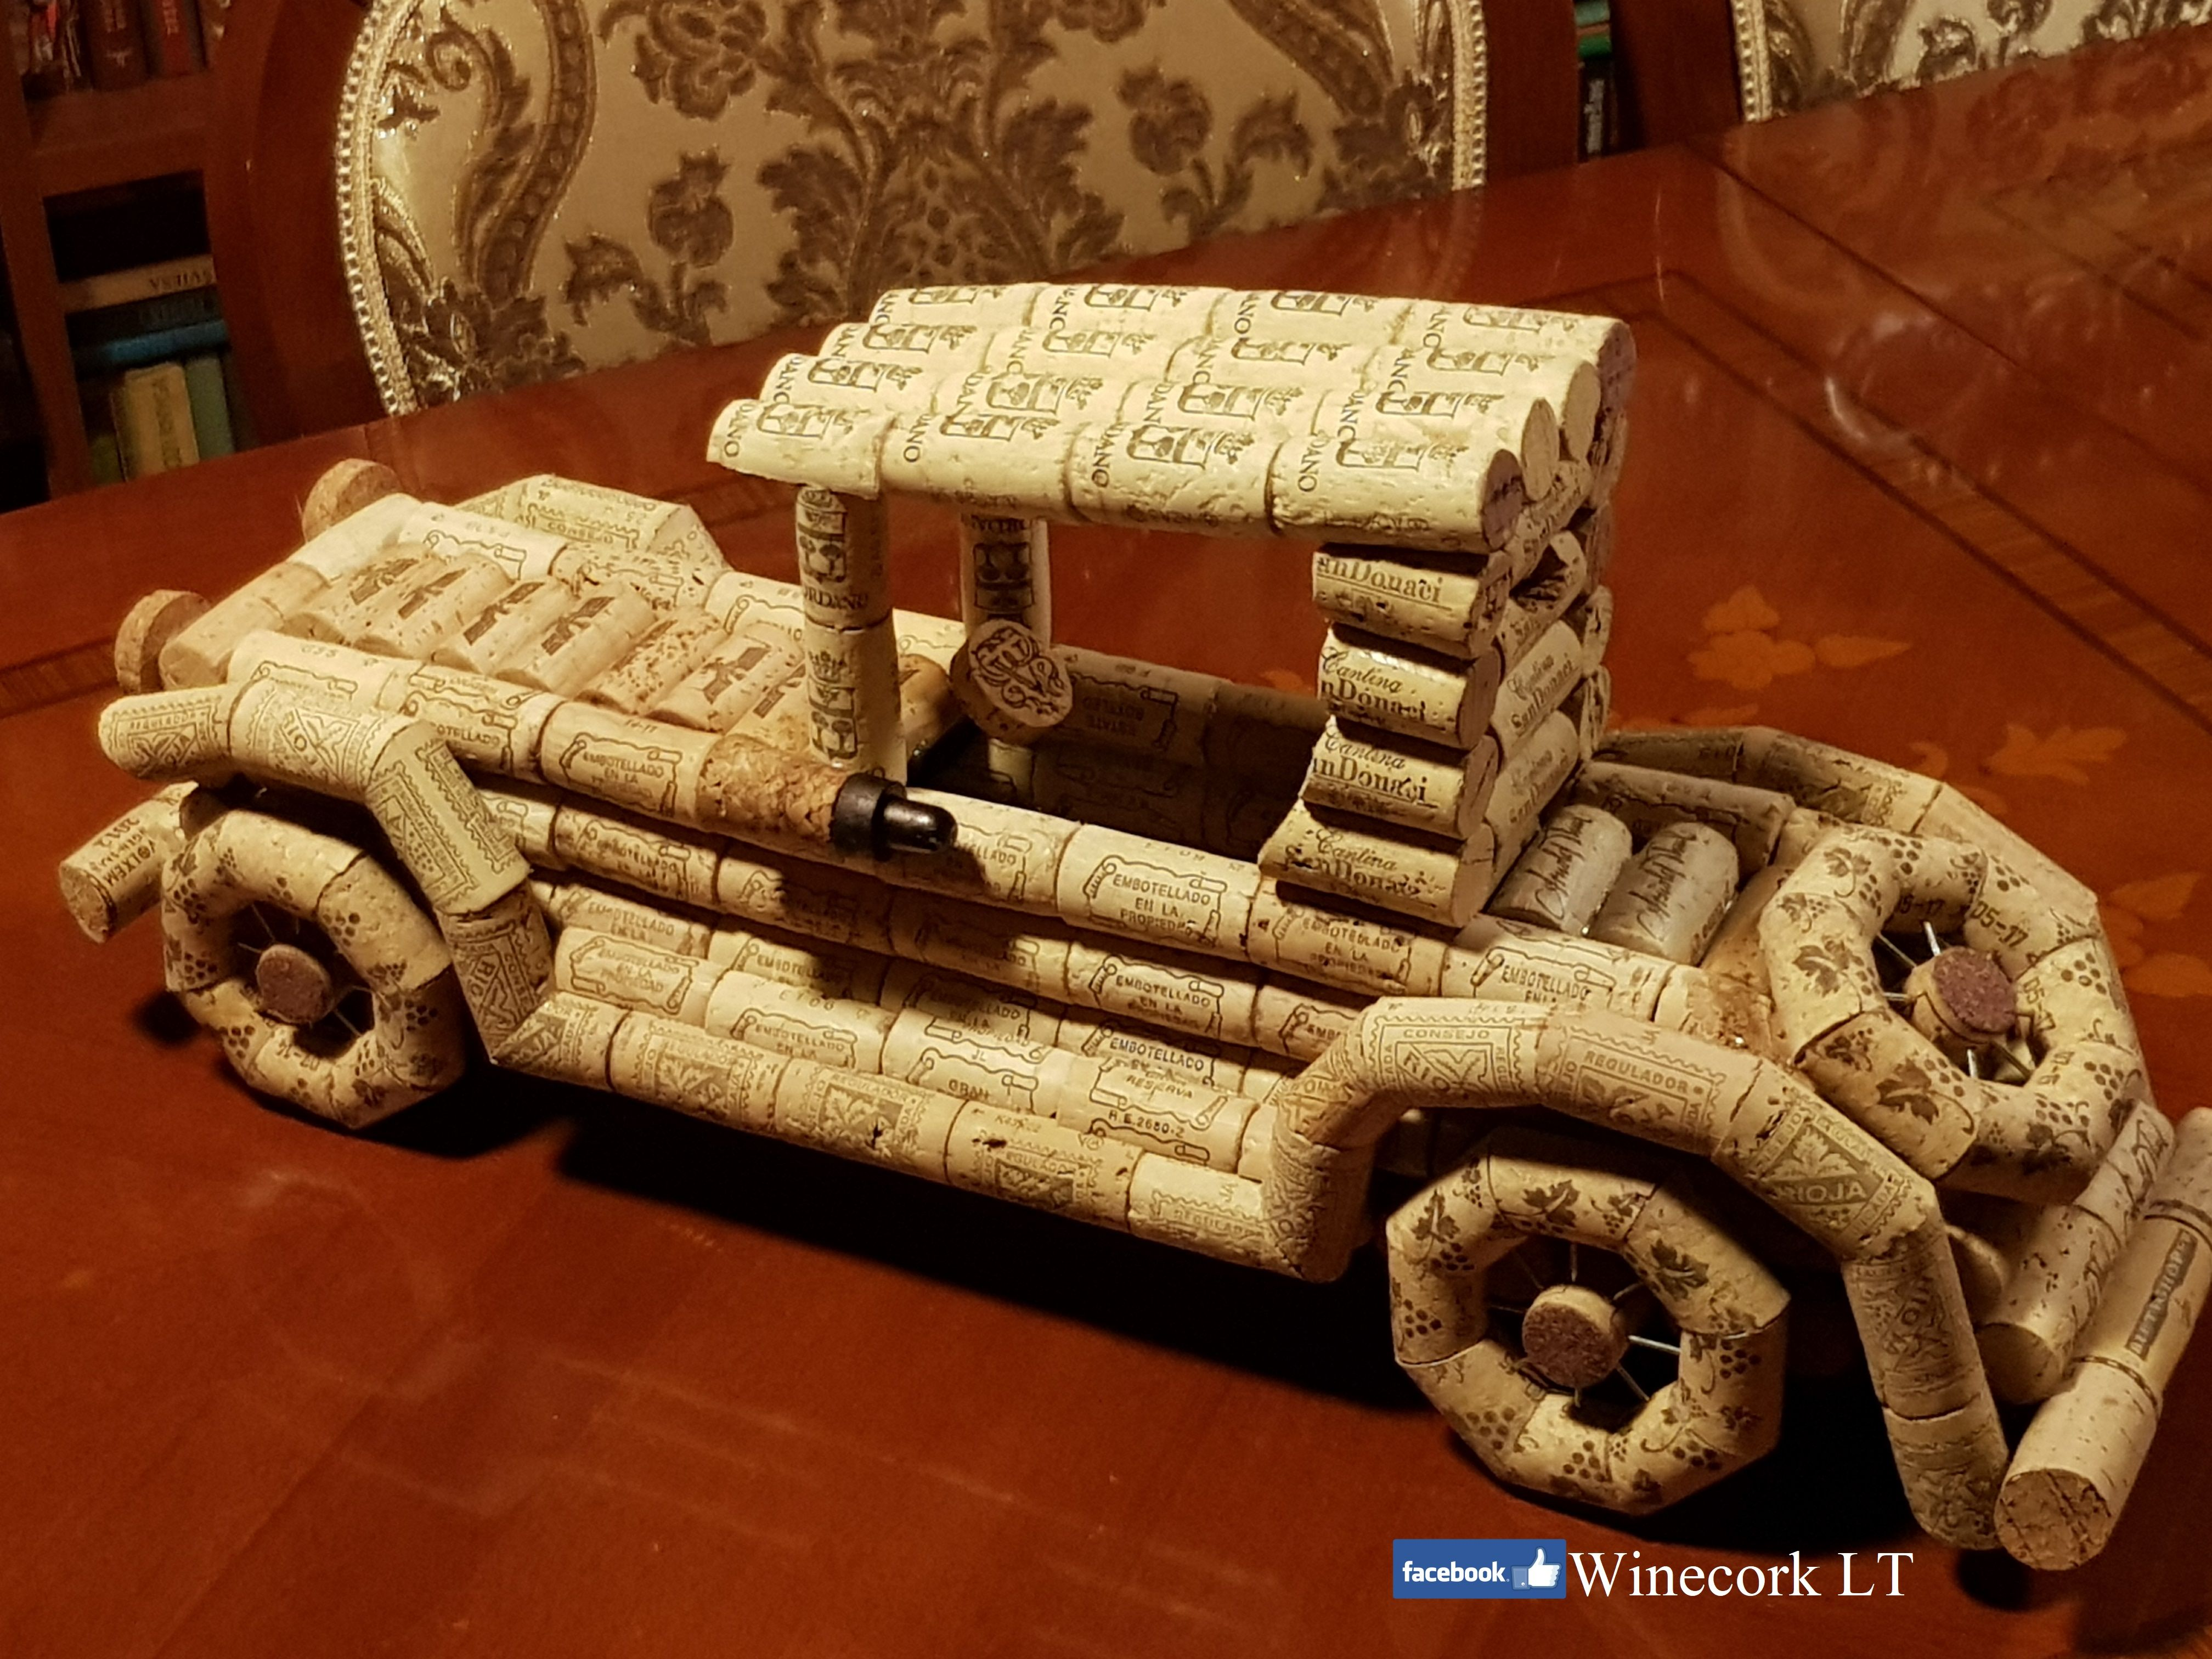 I made it 😉😉😉 Wine cork gifts, Retro cars, Wooden toy car